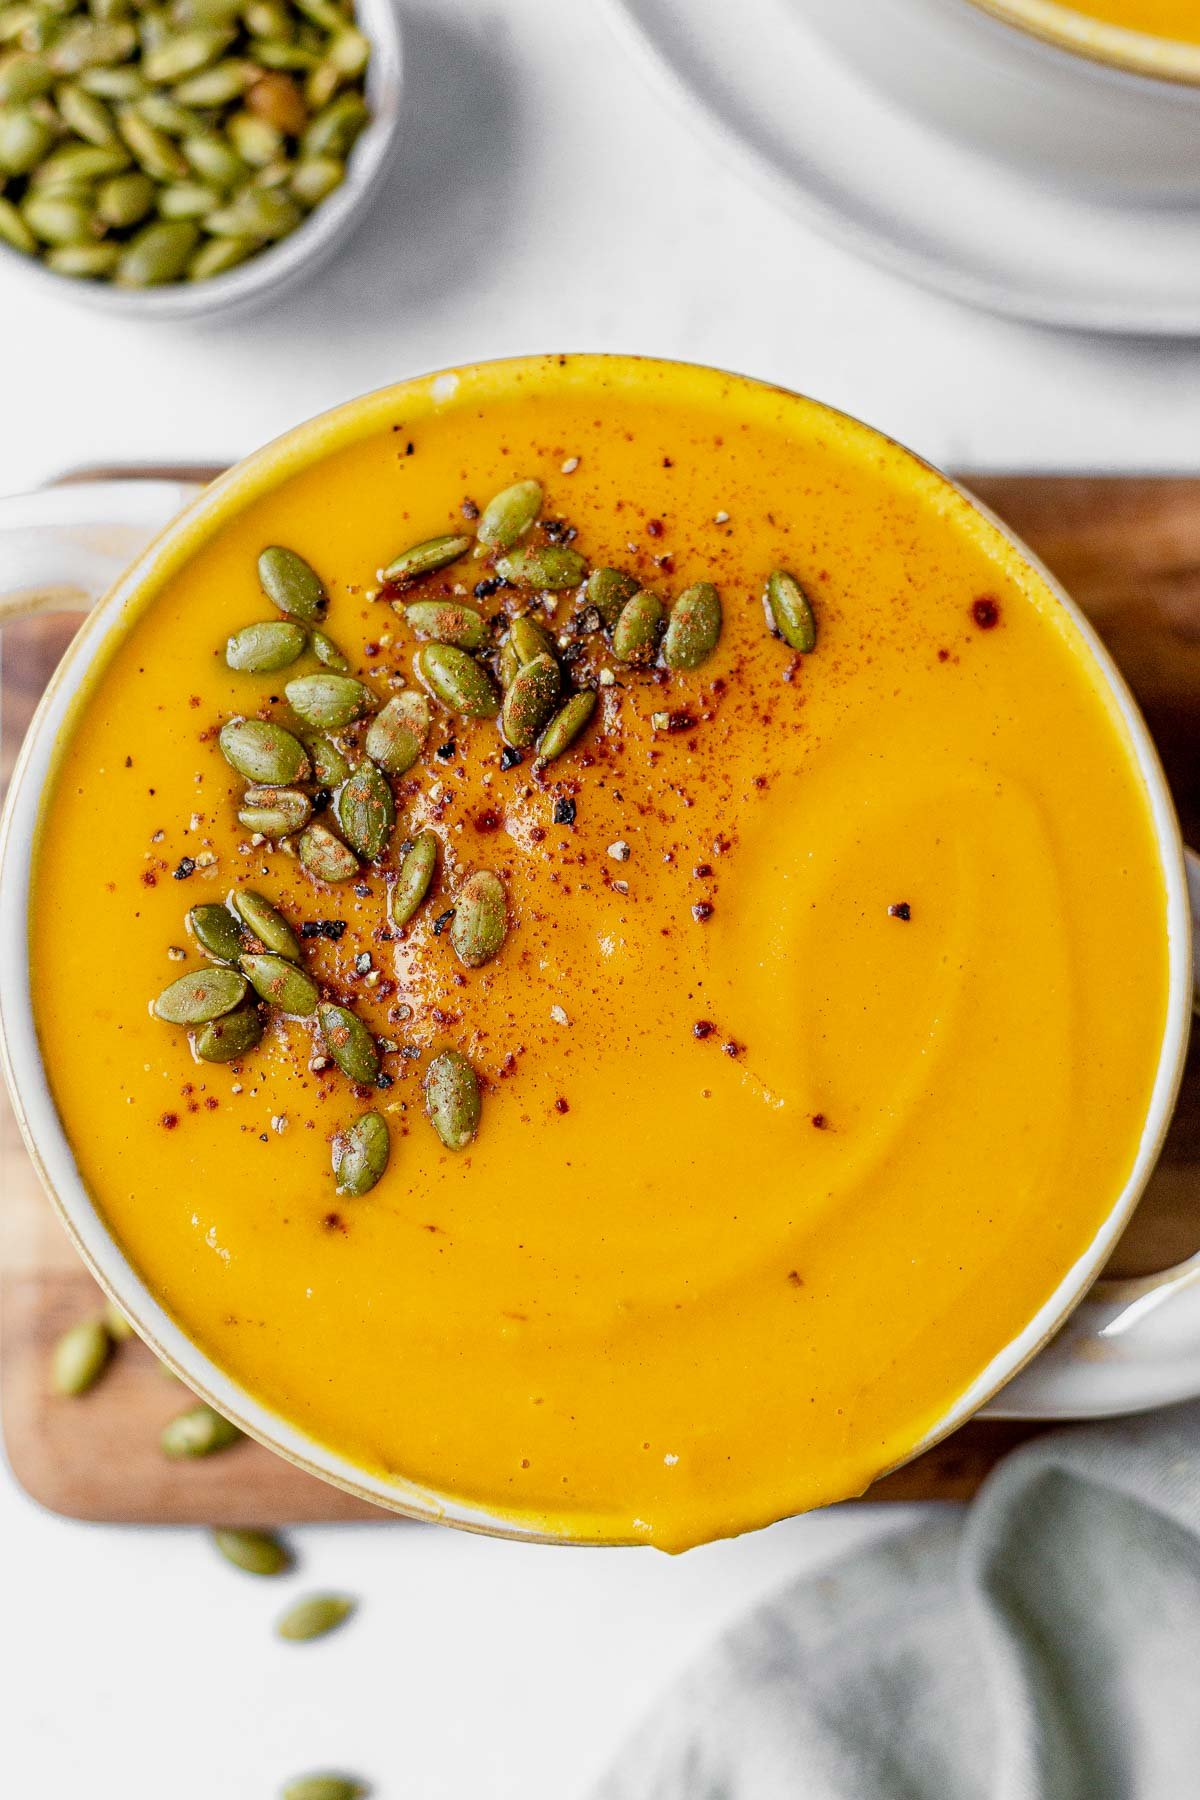 panera bread autumn squash soup recipe in a bowl topped with pumpkin seeds